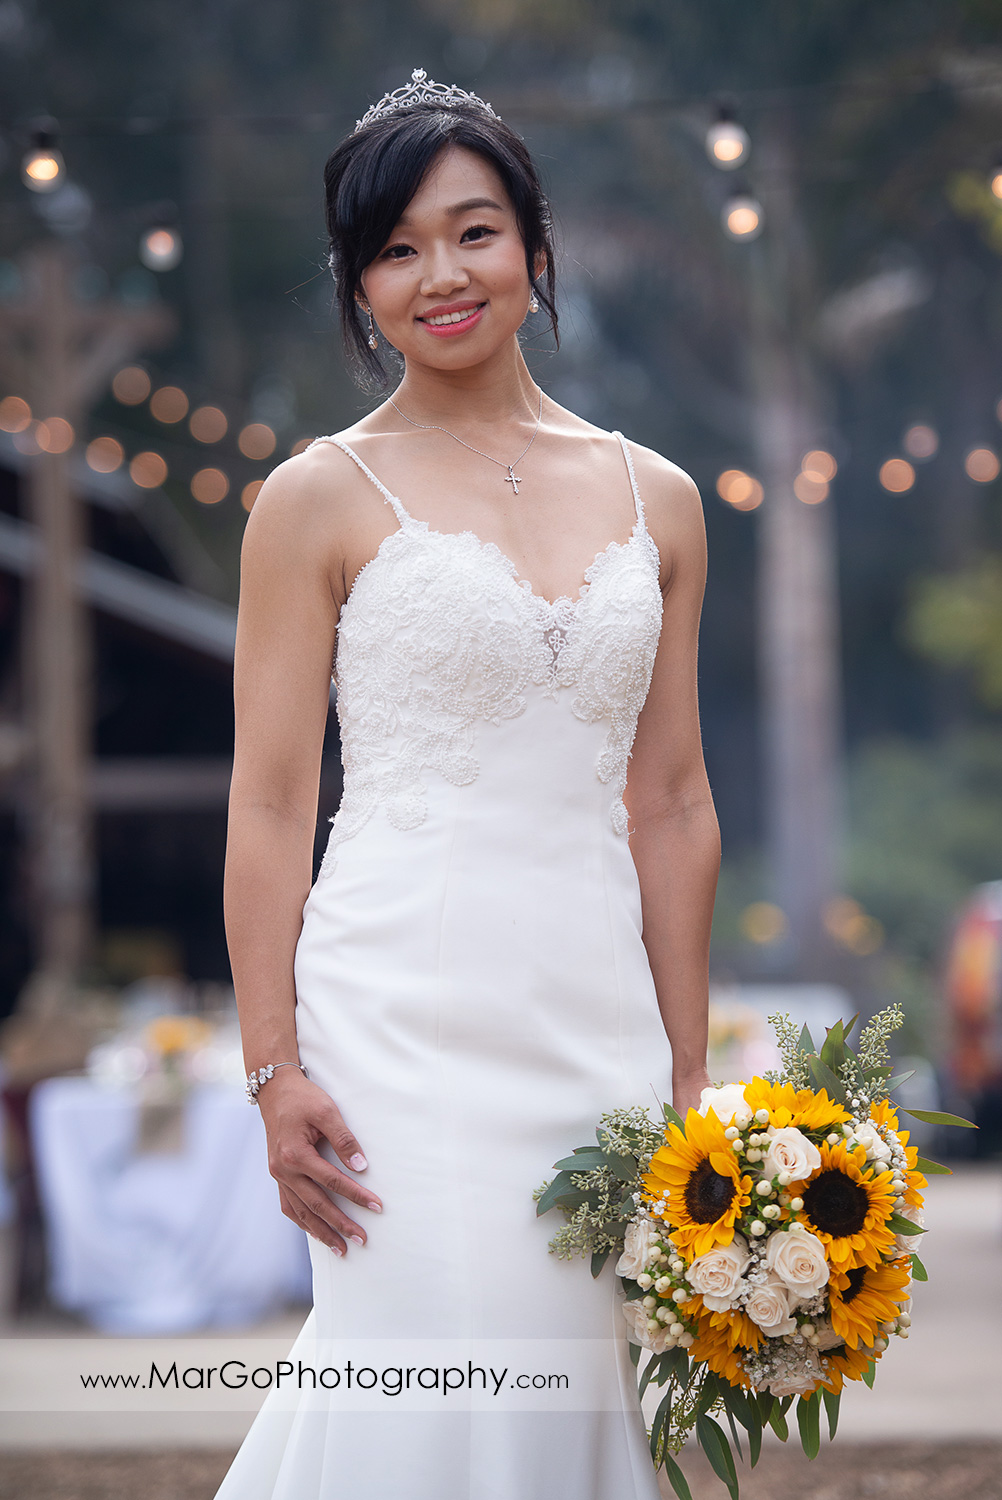 3/4 portrait of the bride in white dress with yellow flower bouquet at Long Branch Saloon & Farms in Half Moon Bay